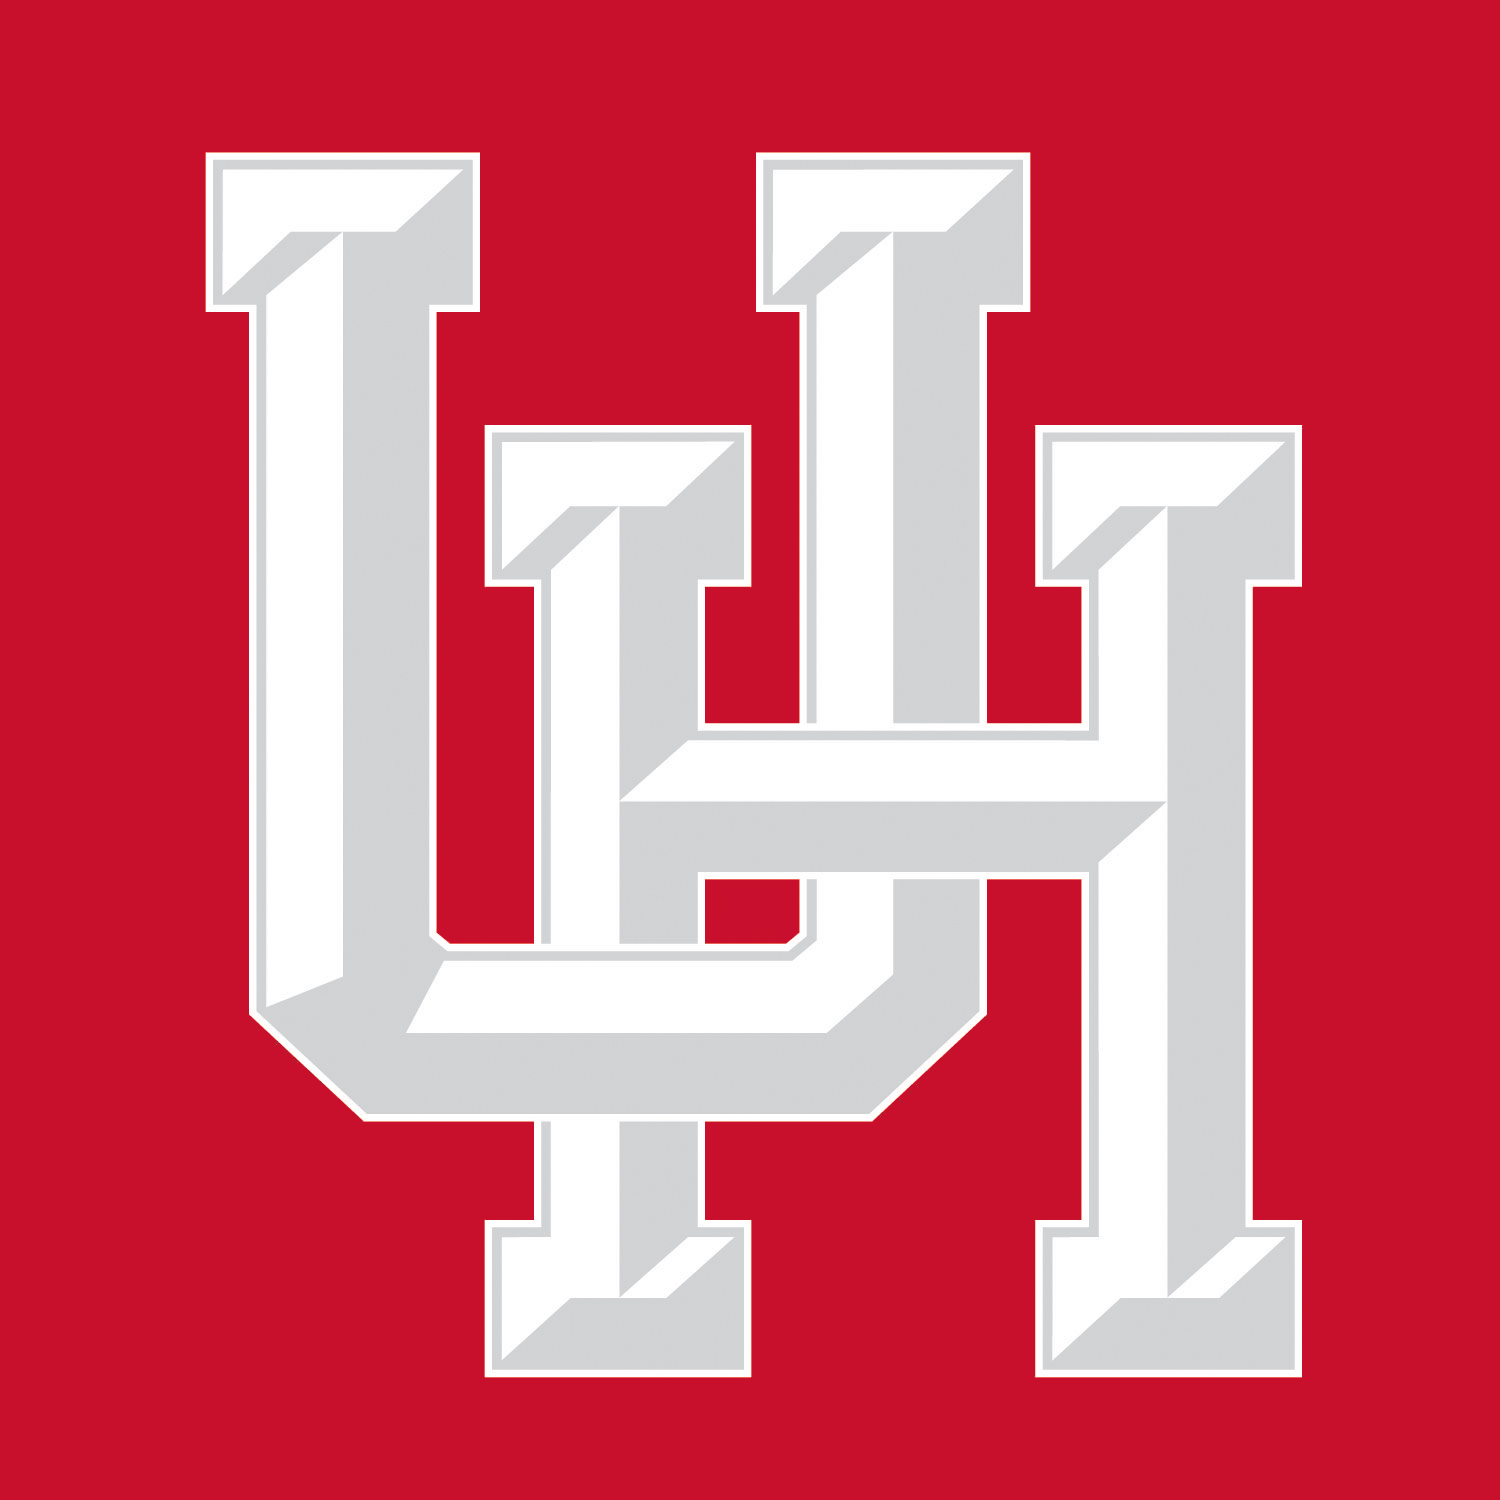 File:Logo of the University of Houston.png.